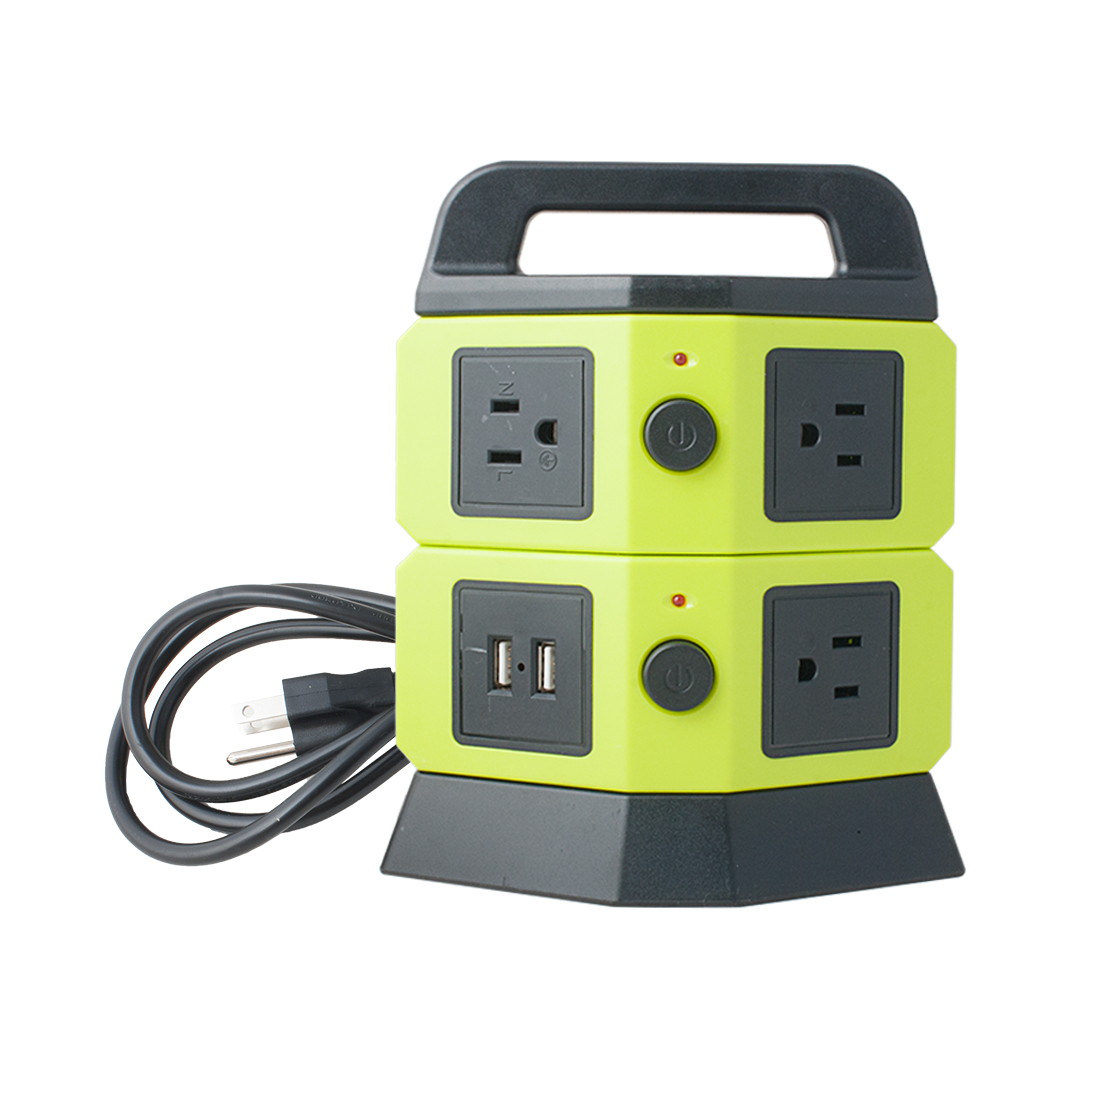 Ac 110v 250v 5 Us Socket 2 Usb Charger Ports Power Outlet Vertical Controlling 110vac With 5vdc Multi